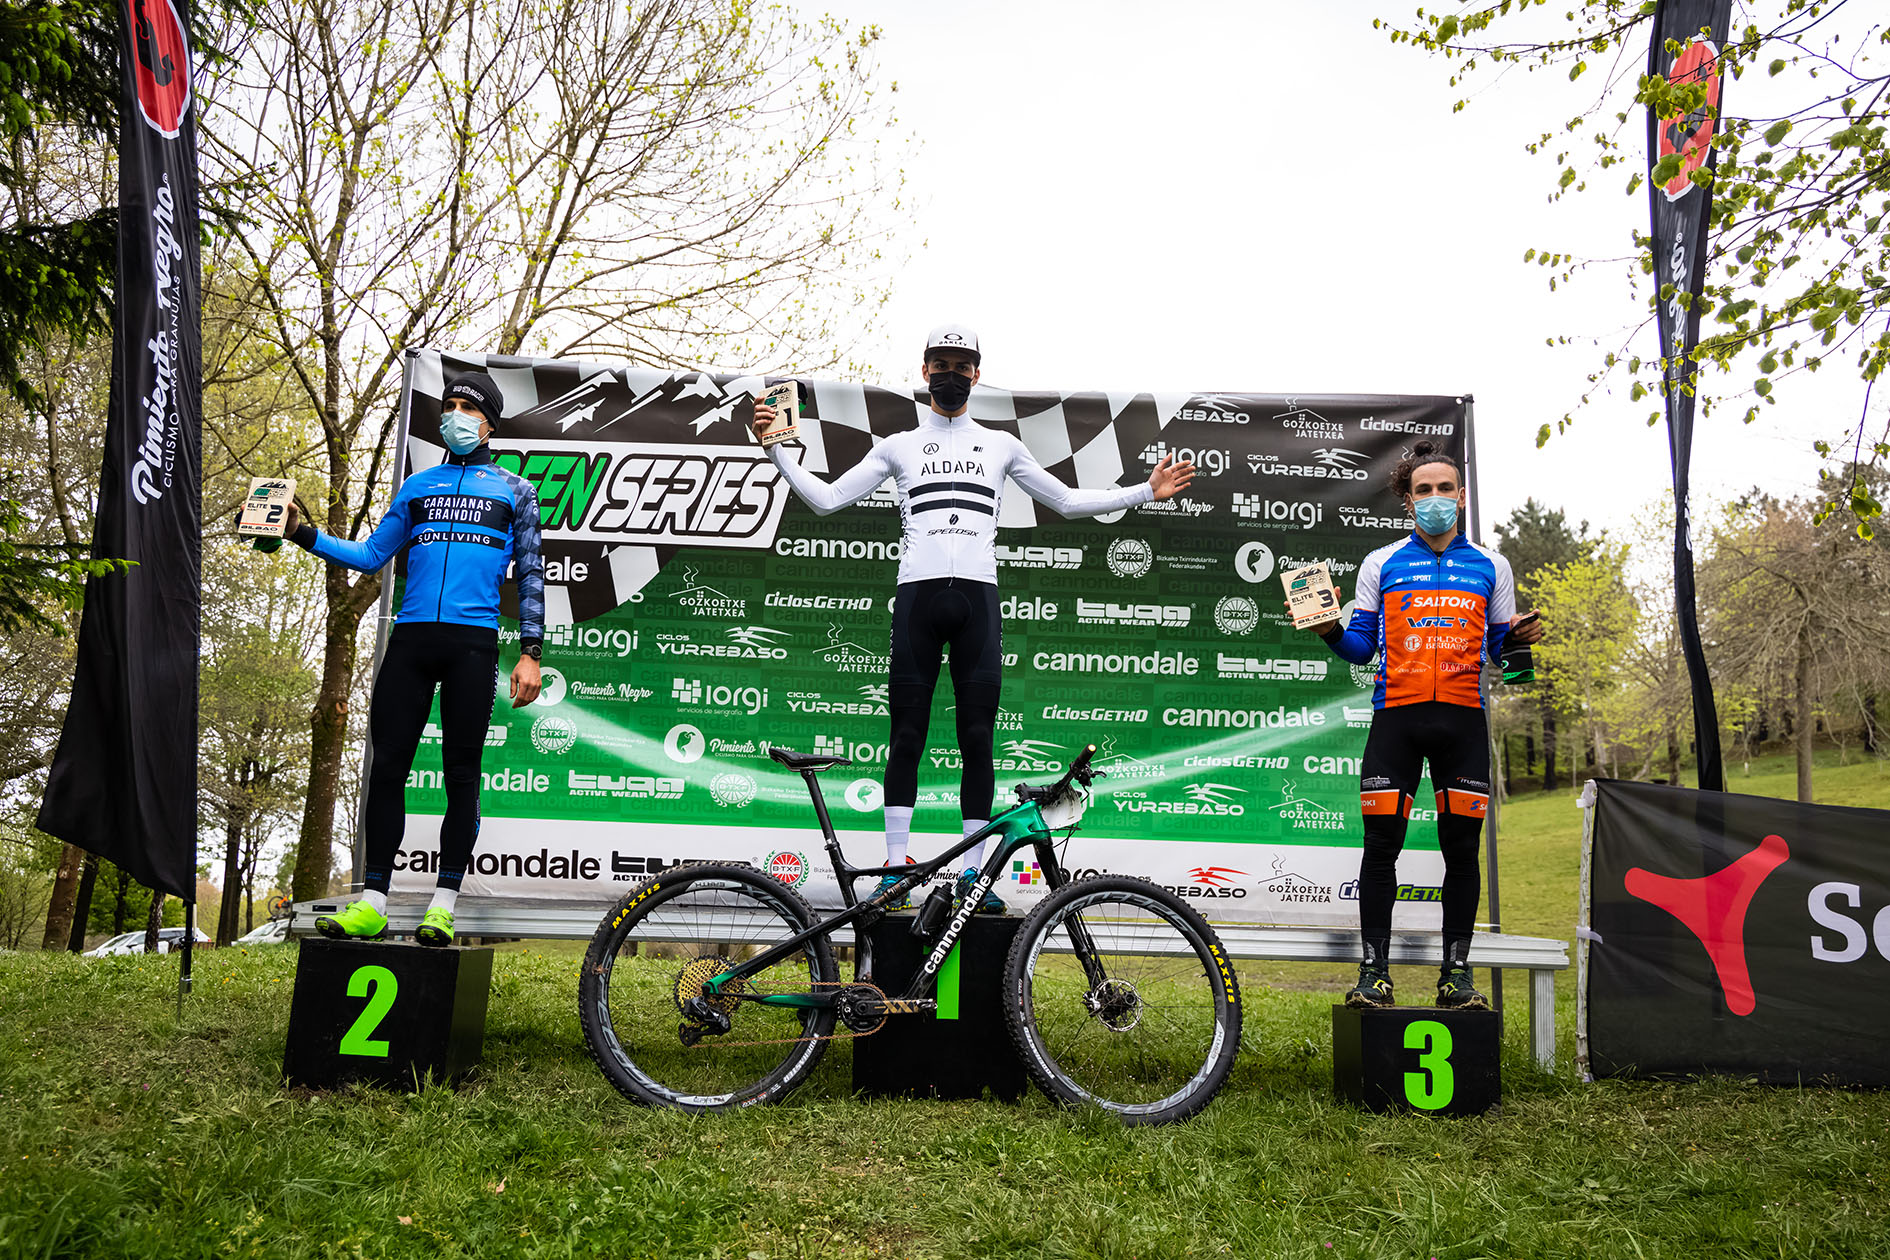 Green Series XCO powered by Cannondale 2 Bilbao podium Elitejpg